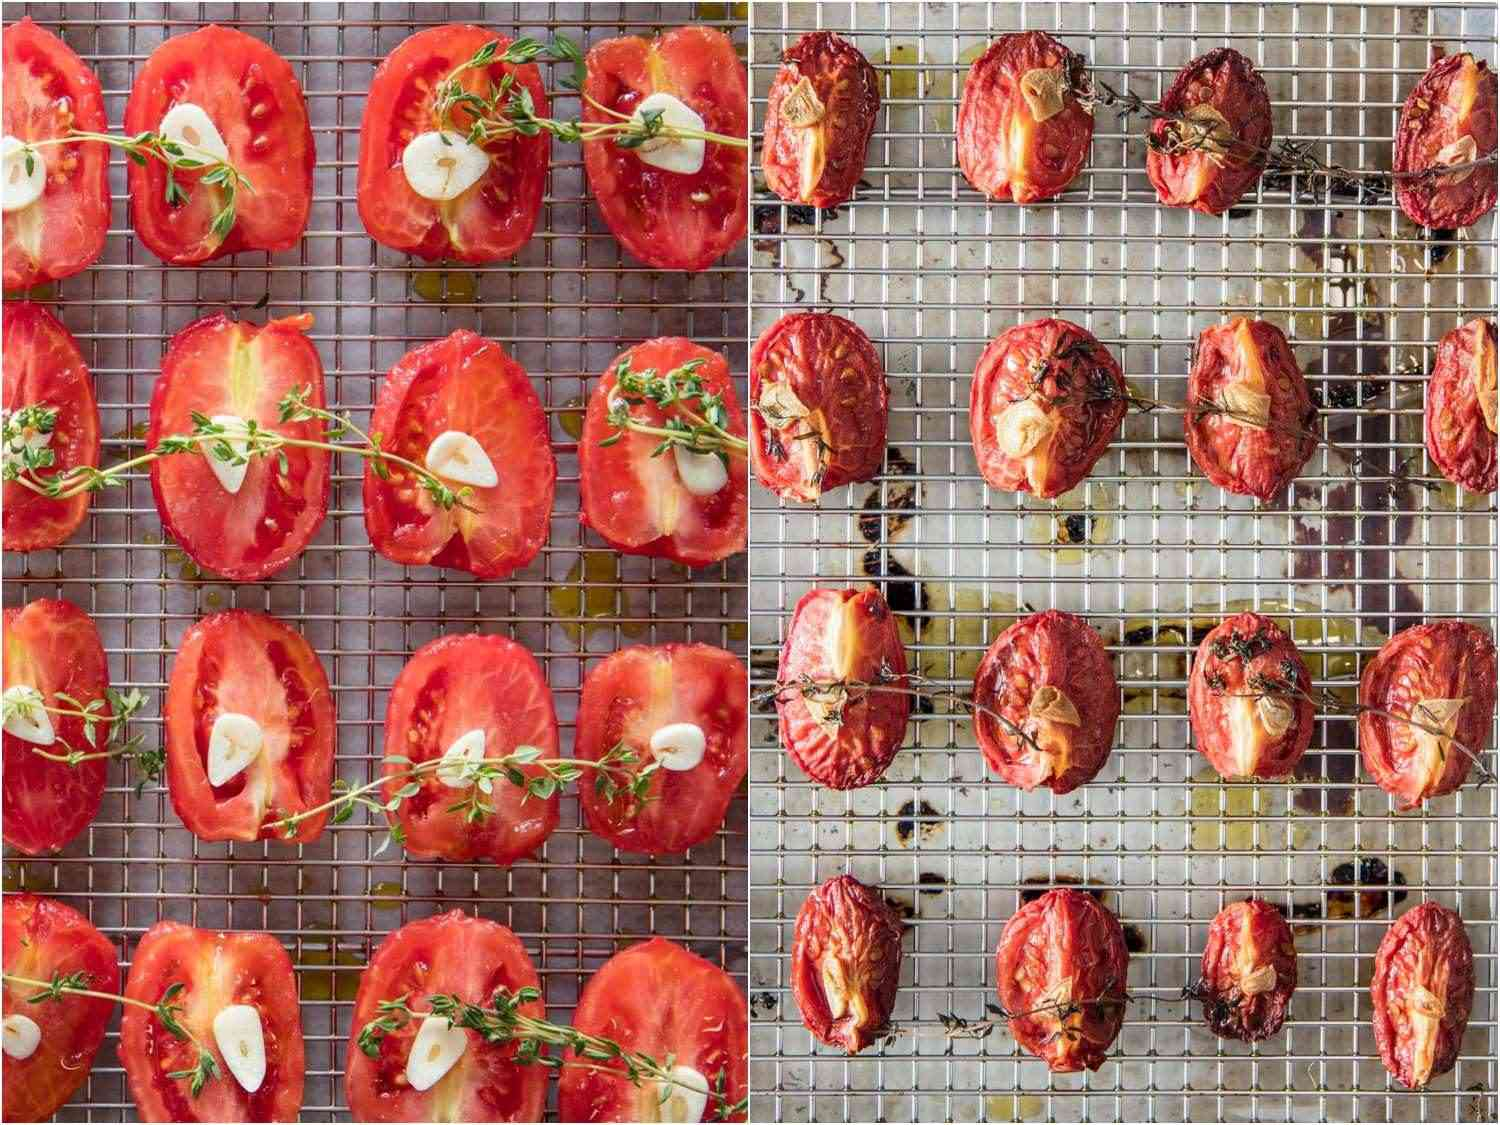 Before and after collage of oven-roasted tomatoes